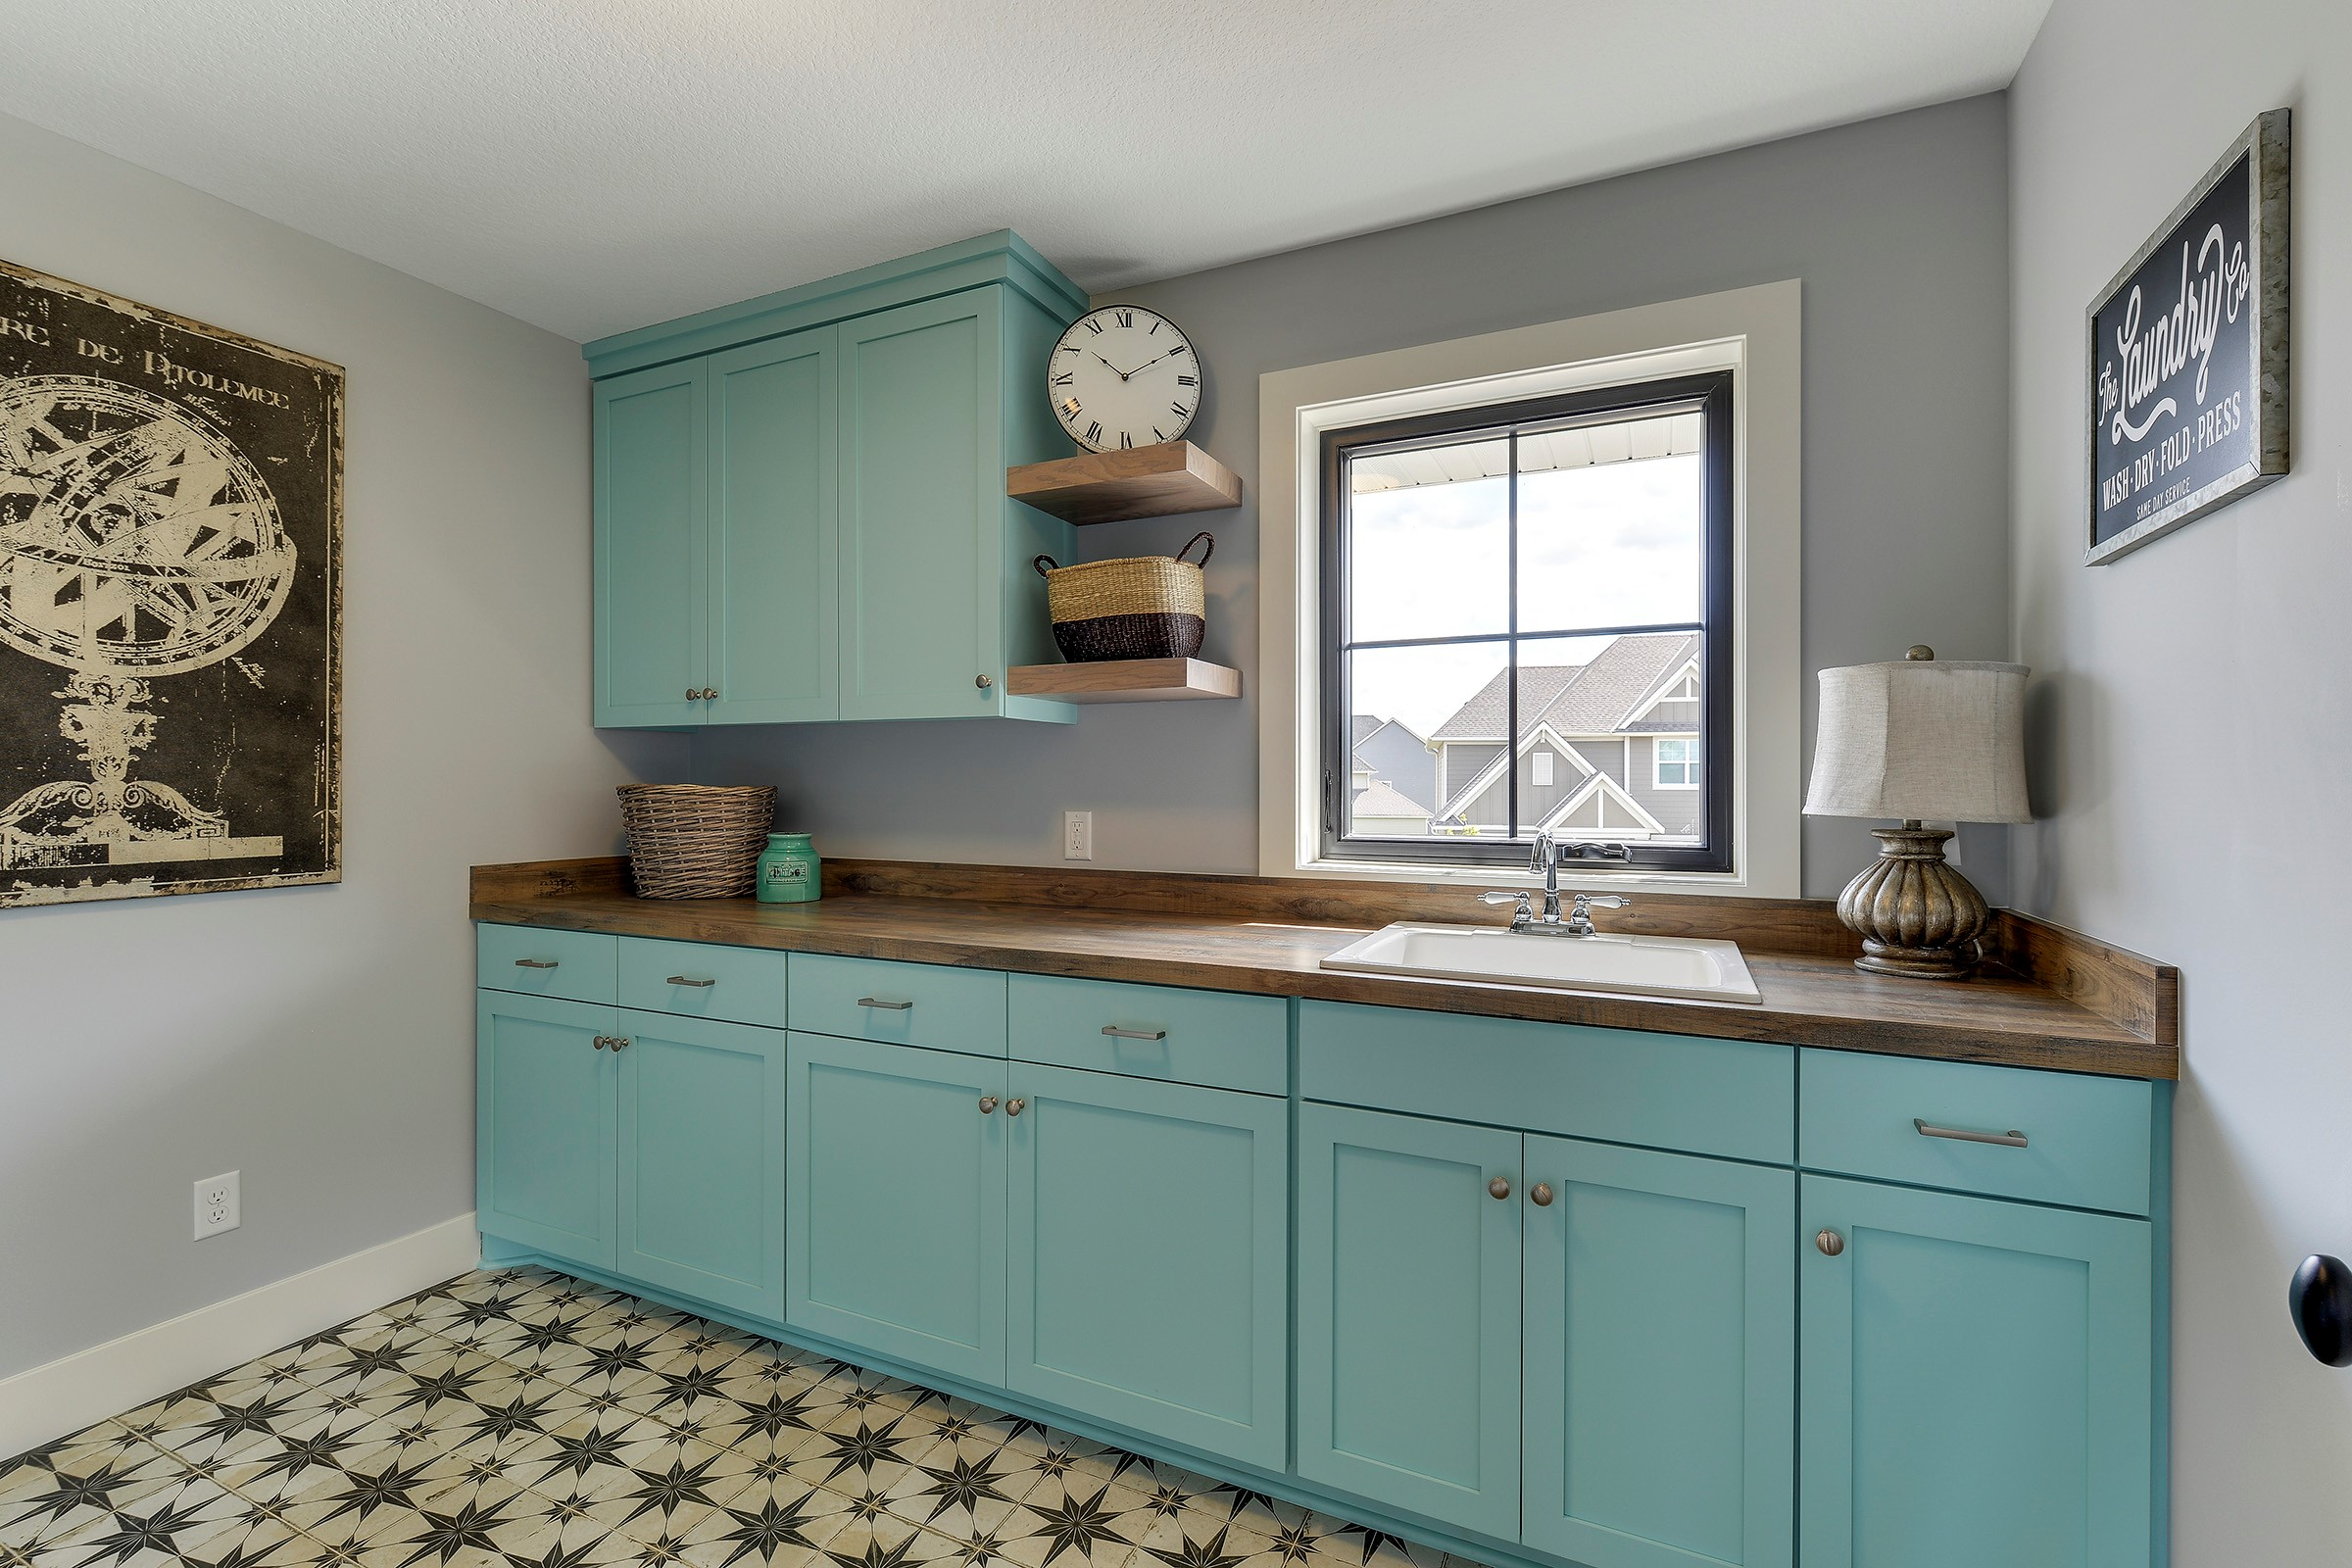 You don't always have to paint the walls to add color to a room...Instead paint the cabinets!